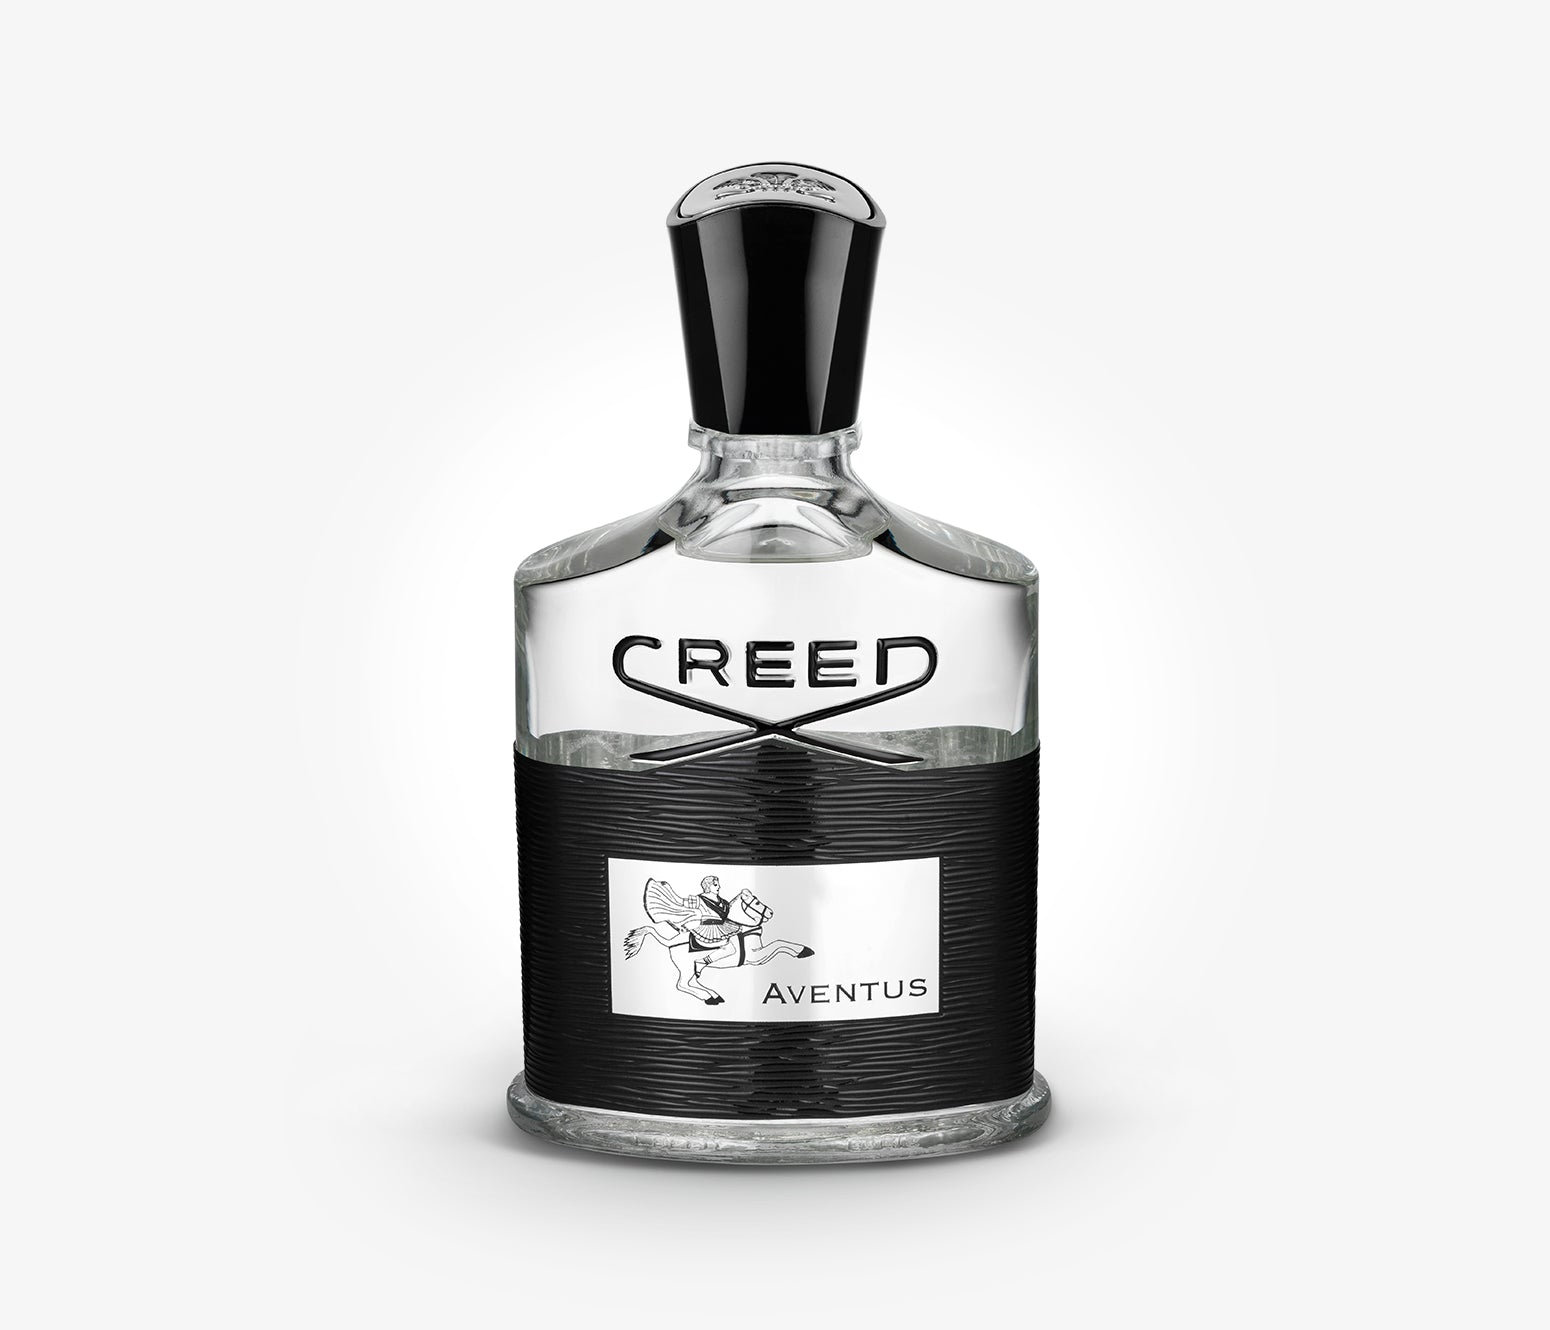 Creed - Aventus - 100ml - KSD4947 - Product Image - Fragrance - Les Senteurs